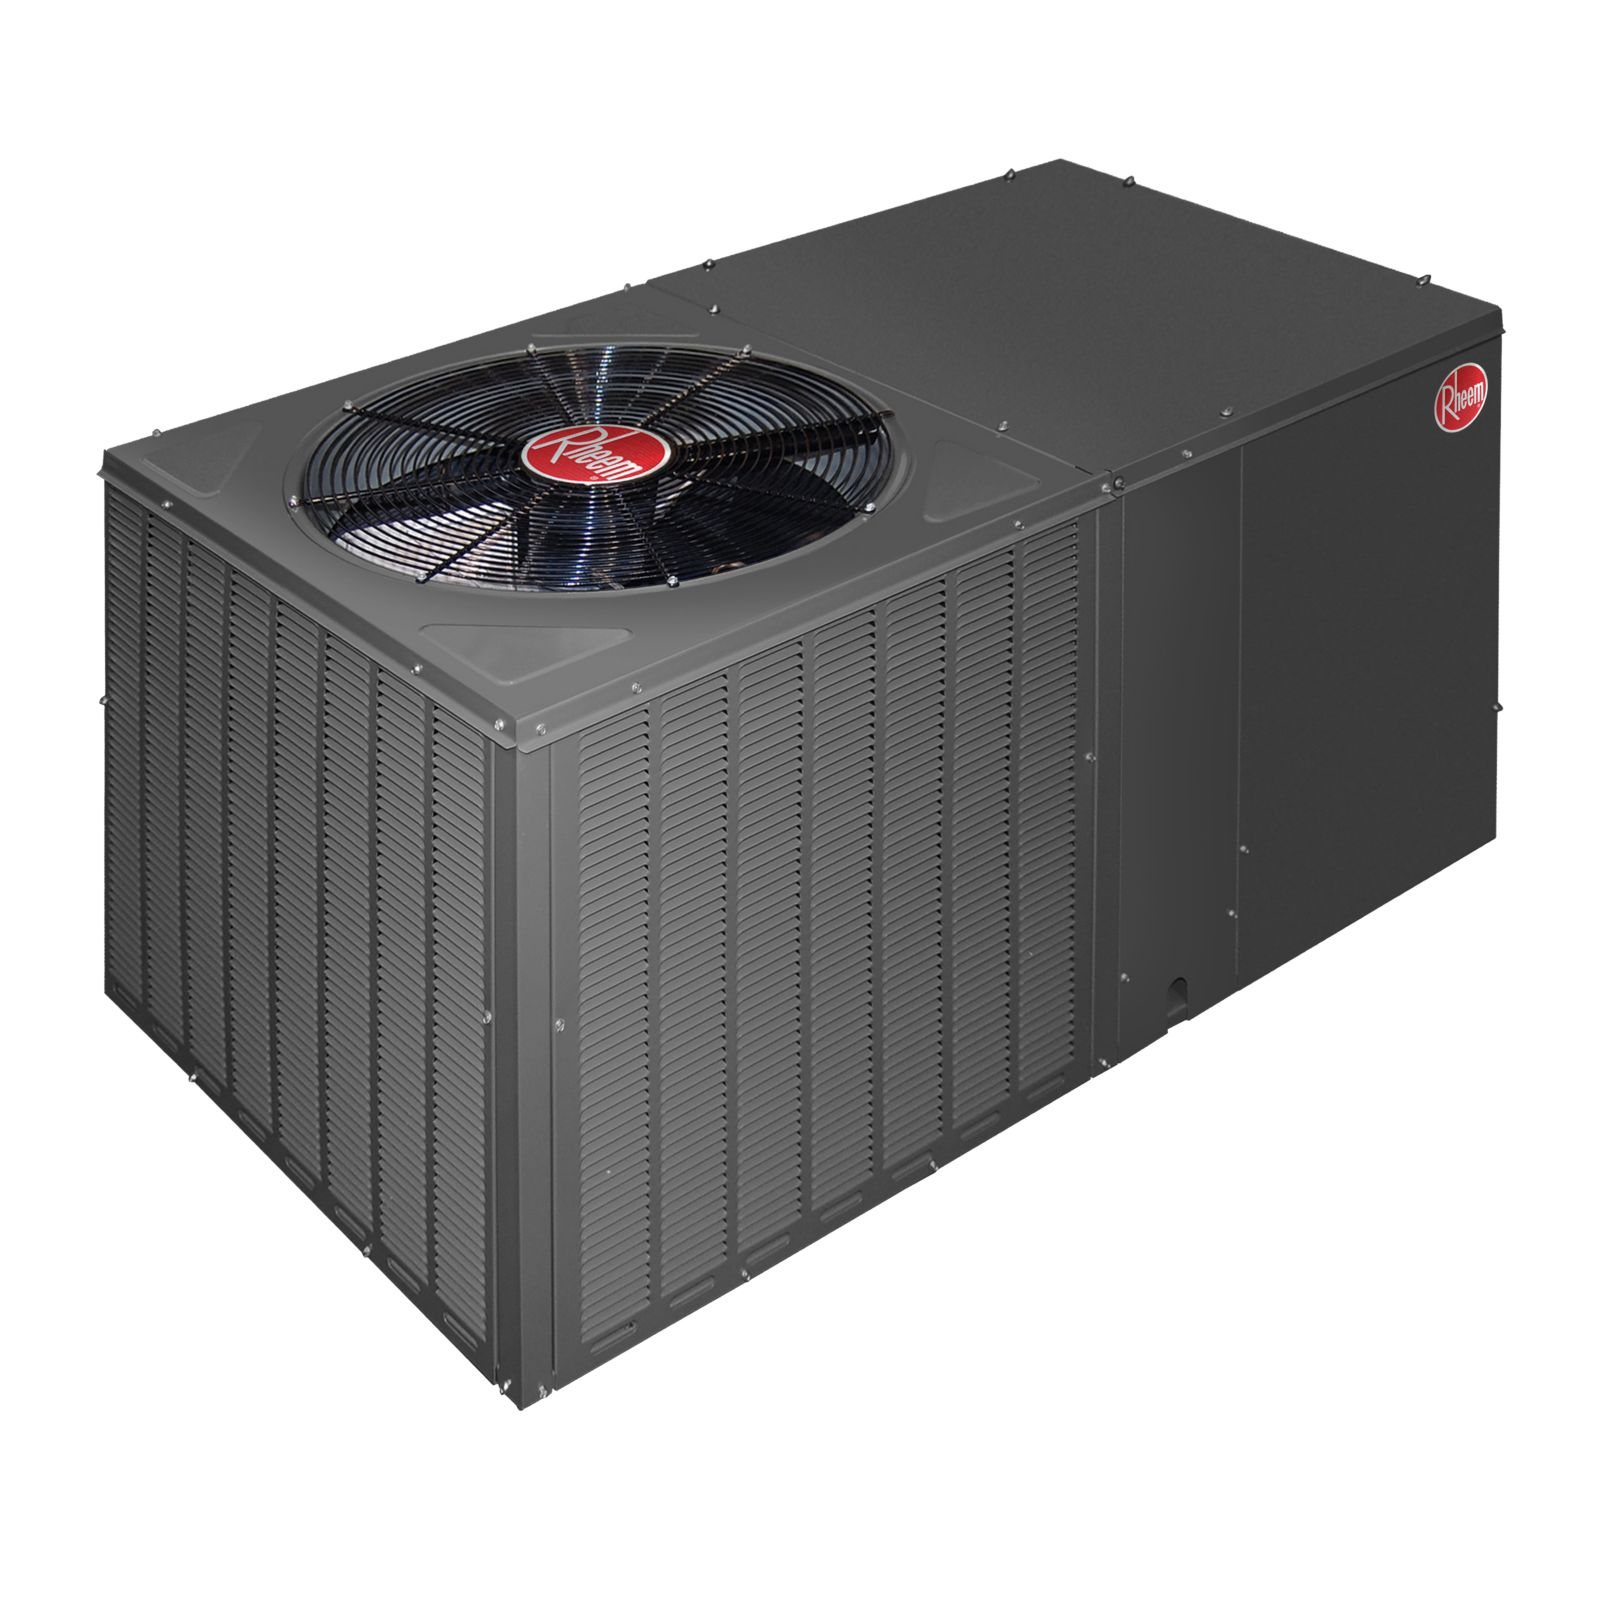 Rheem RSPM-A060JK000 - Classic 5 Ton, 14 SEER, Packaged Air Conditioner - Dedicated Horizontal, 208-230 V, 1 Ph, 60 Hz